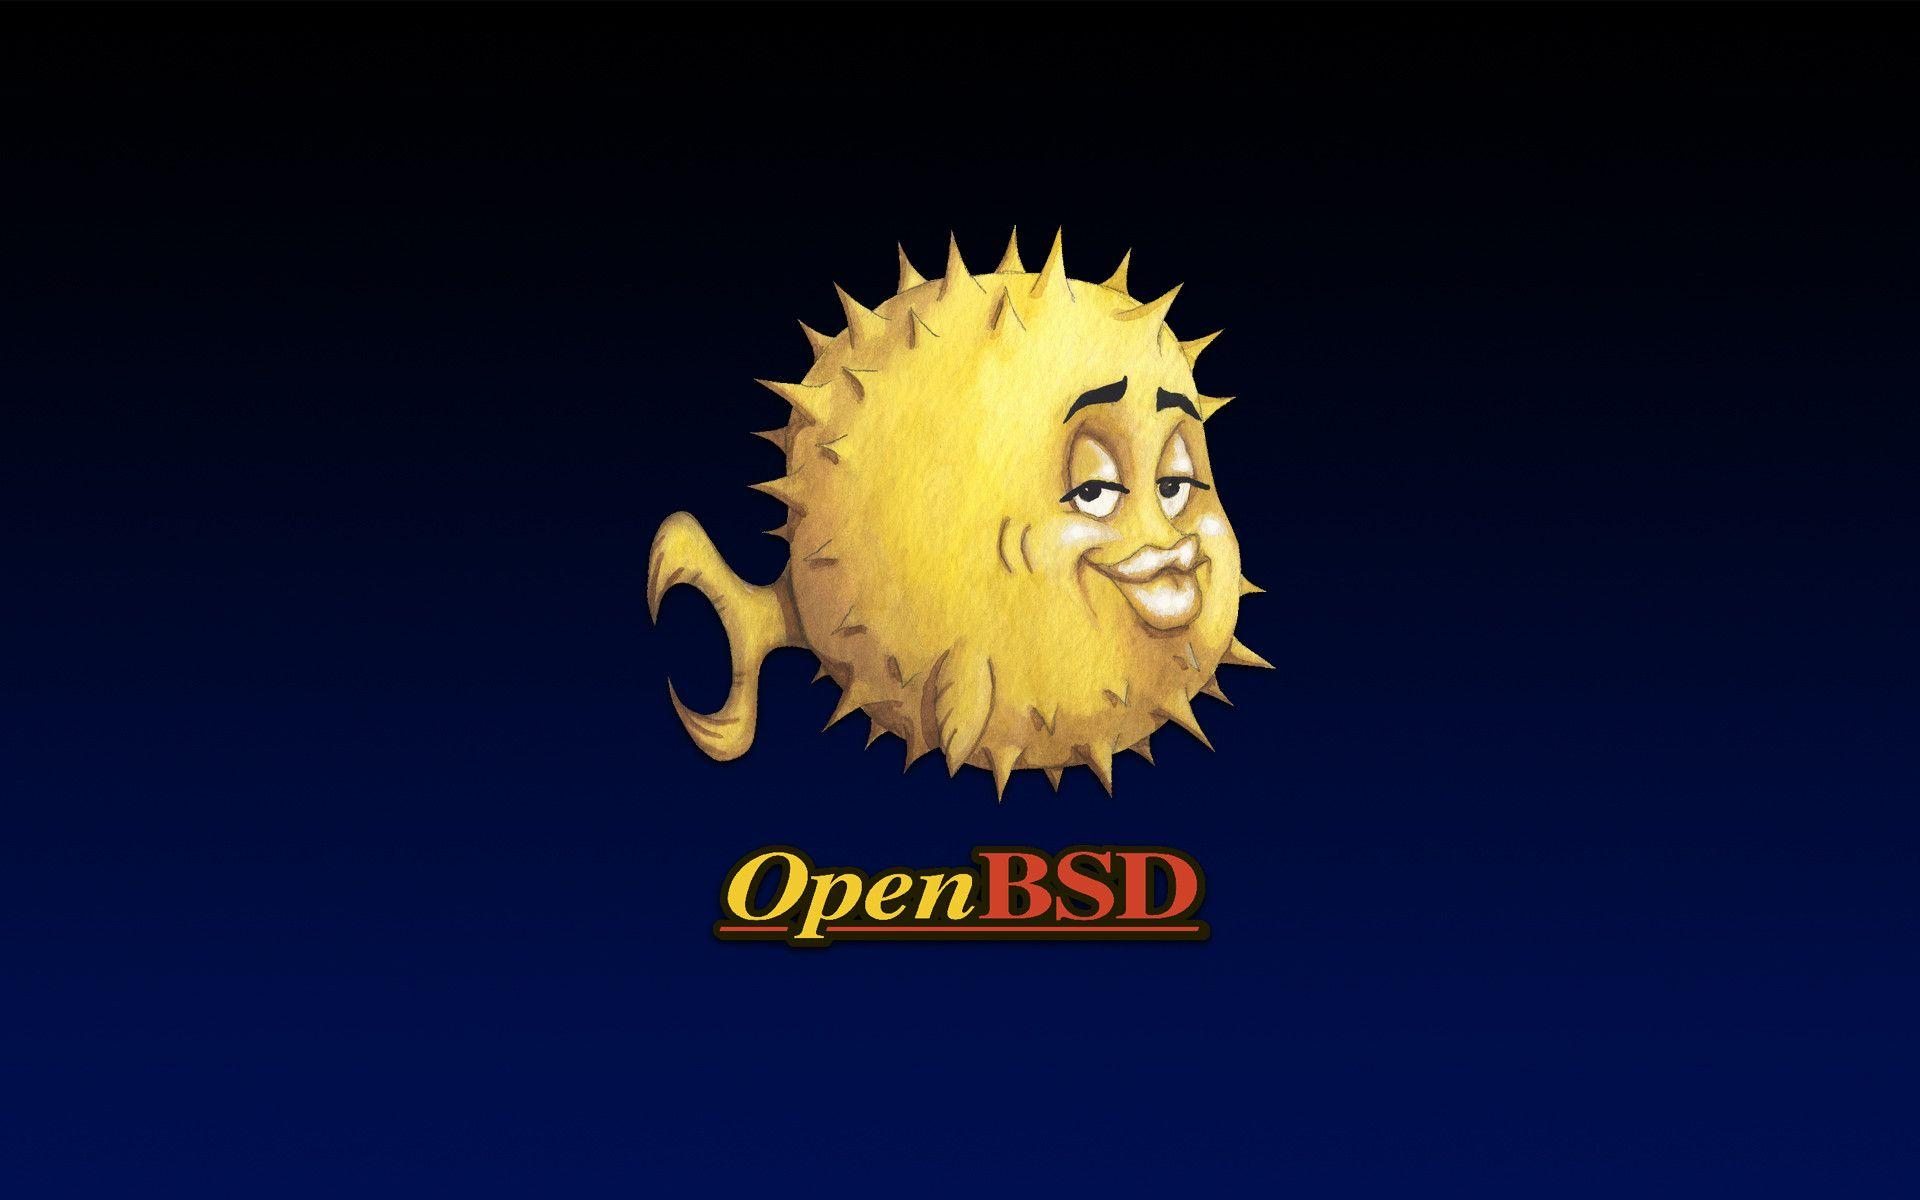 OpenBSD Wallpapers - Wallpaper Cave